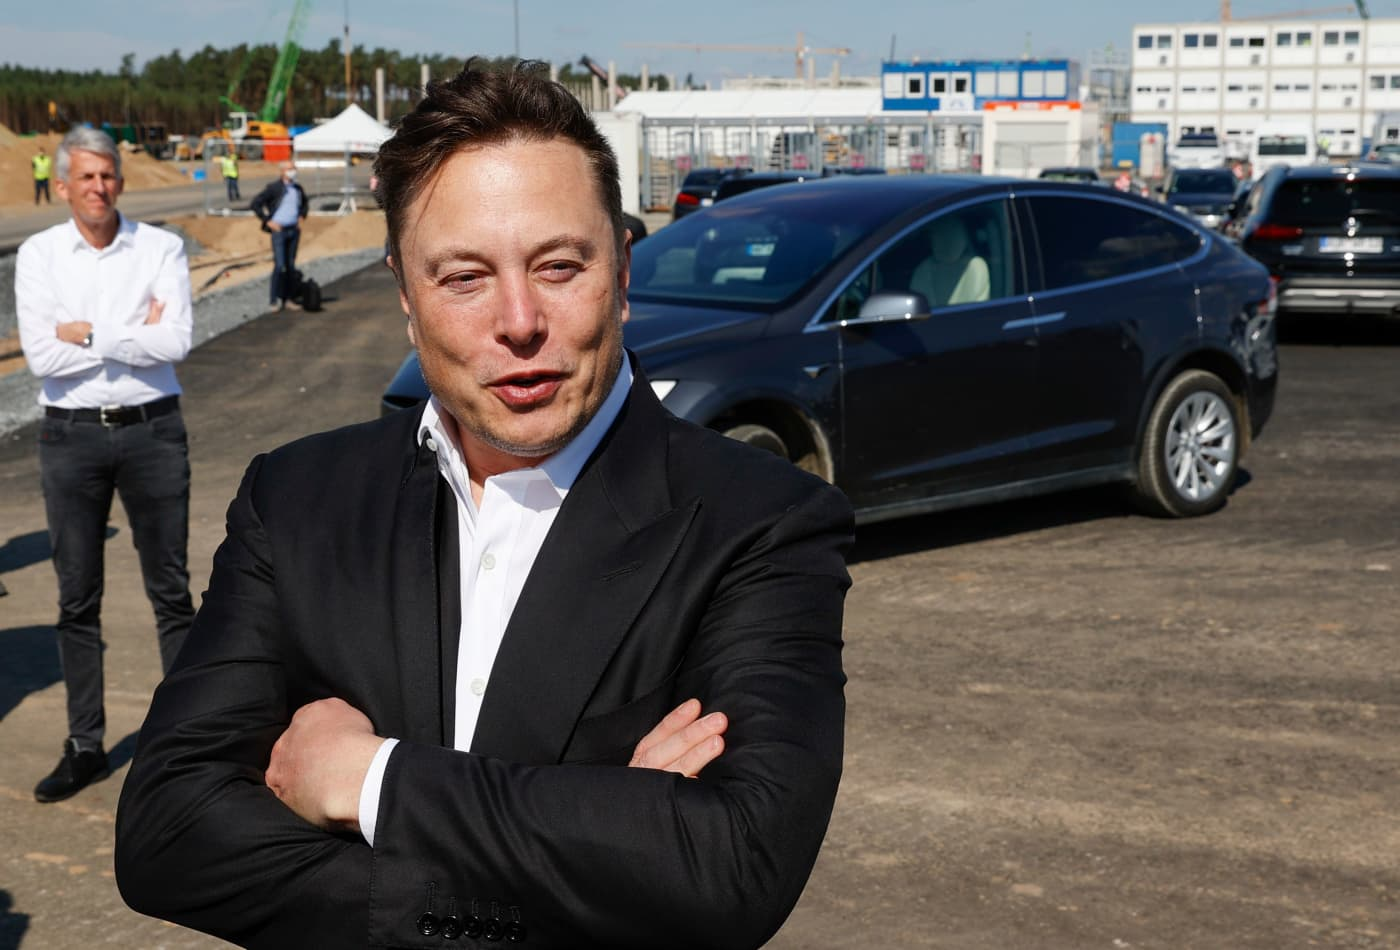 Tesla CEO Elon Musk has told friends and associates he plans to move to Texas